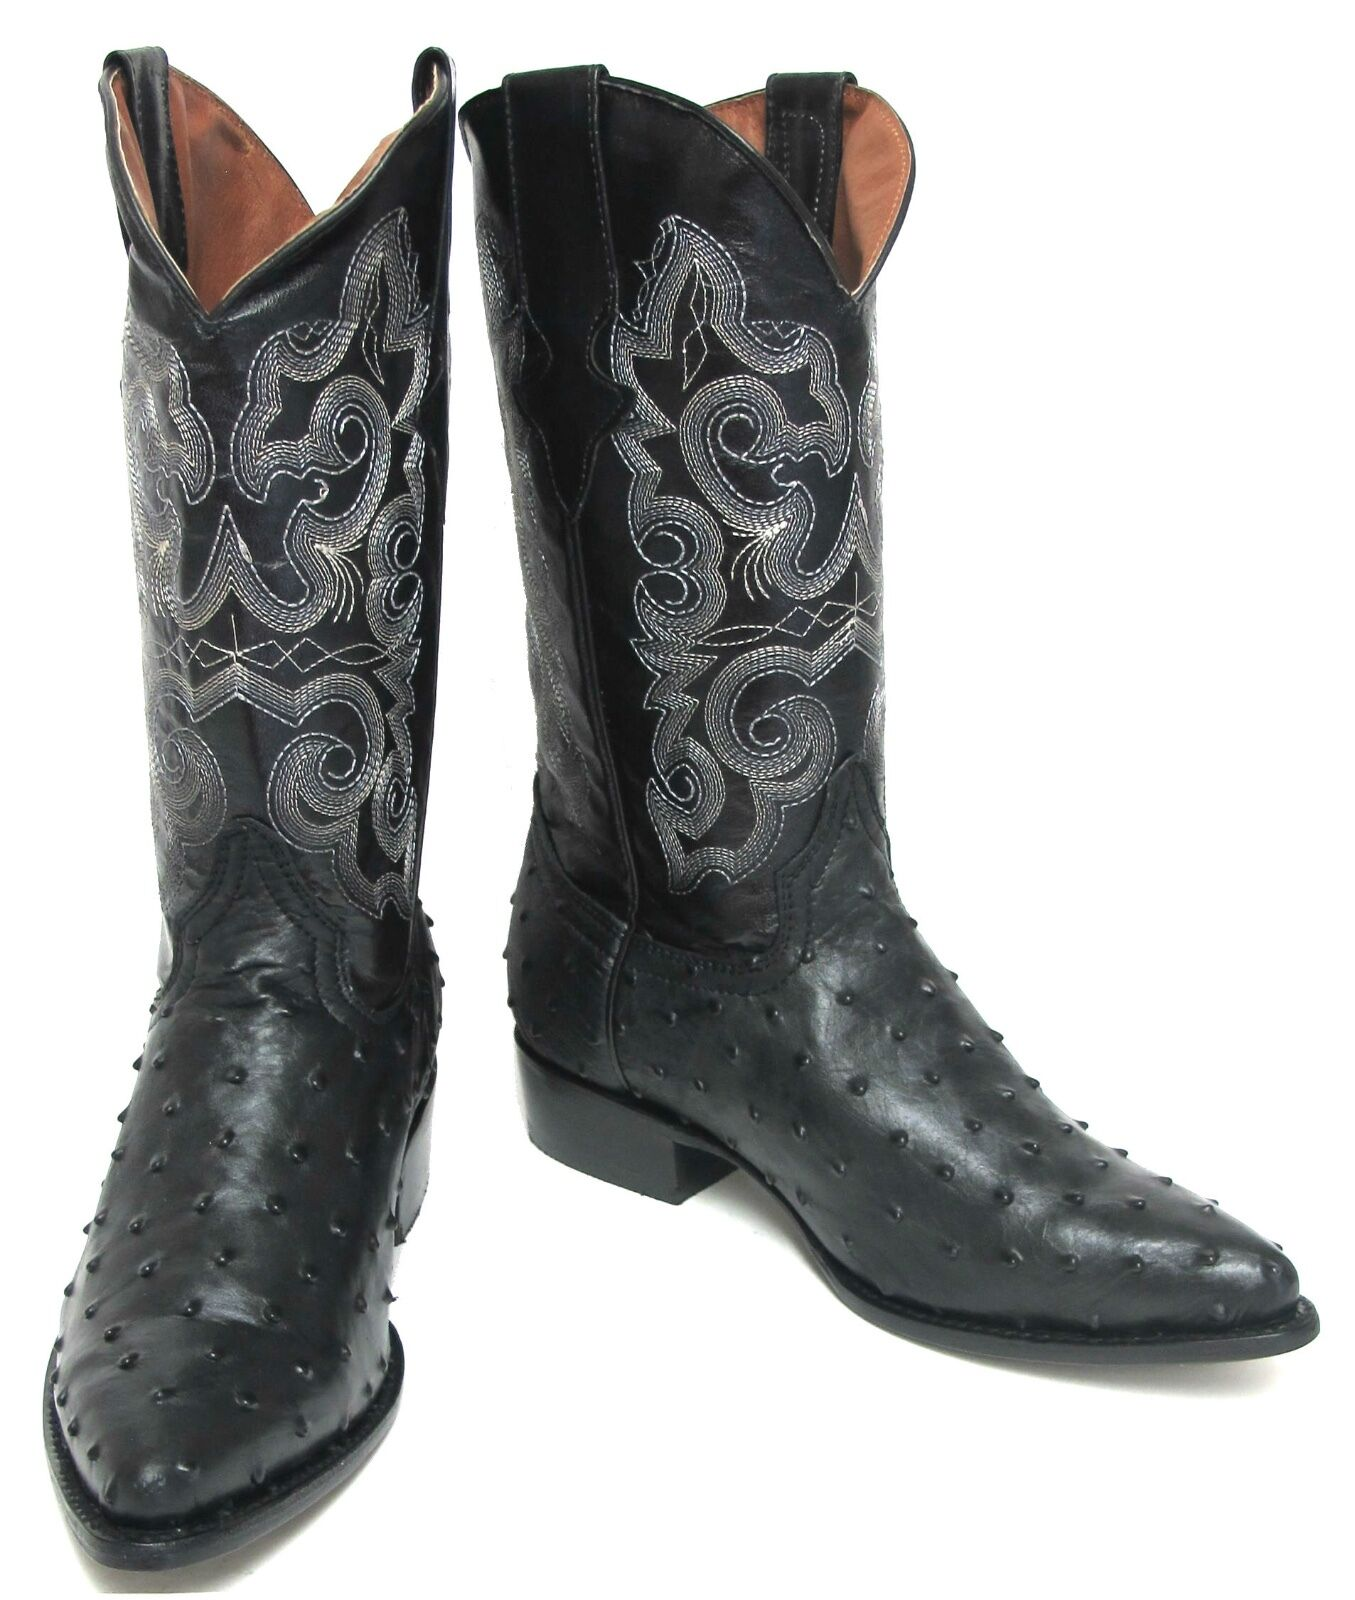 Men's New TW Ostrich Design Leather Cowboy Western Rodeo  J Toe  Boots Black